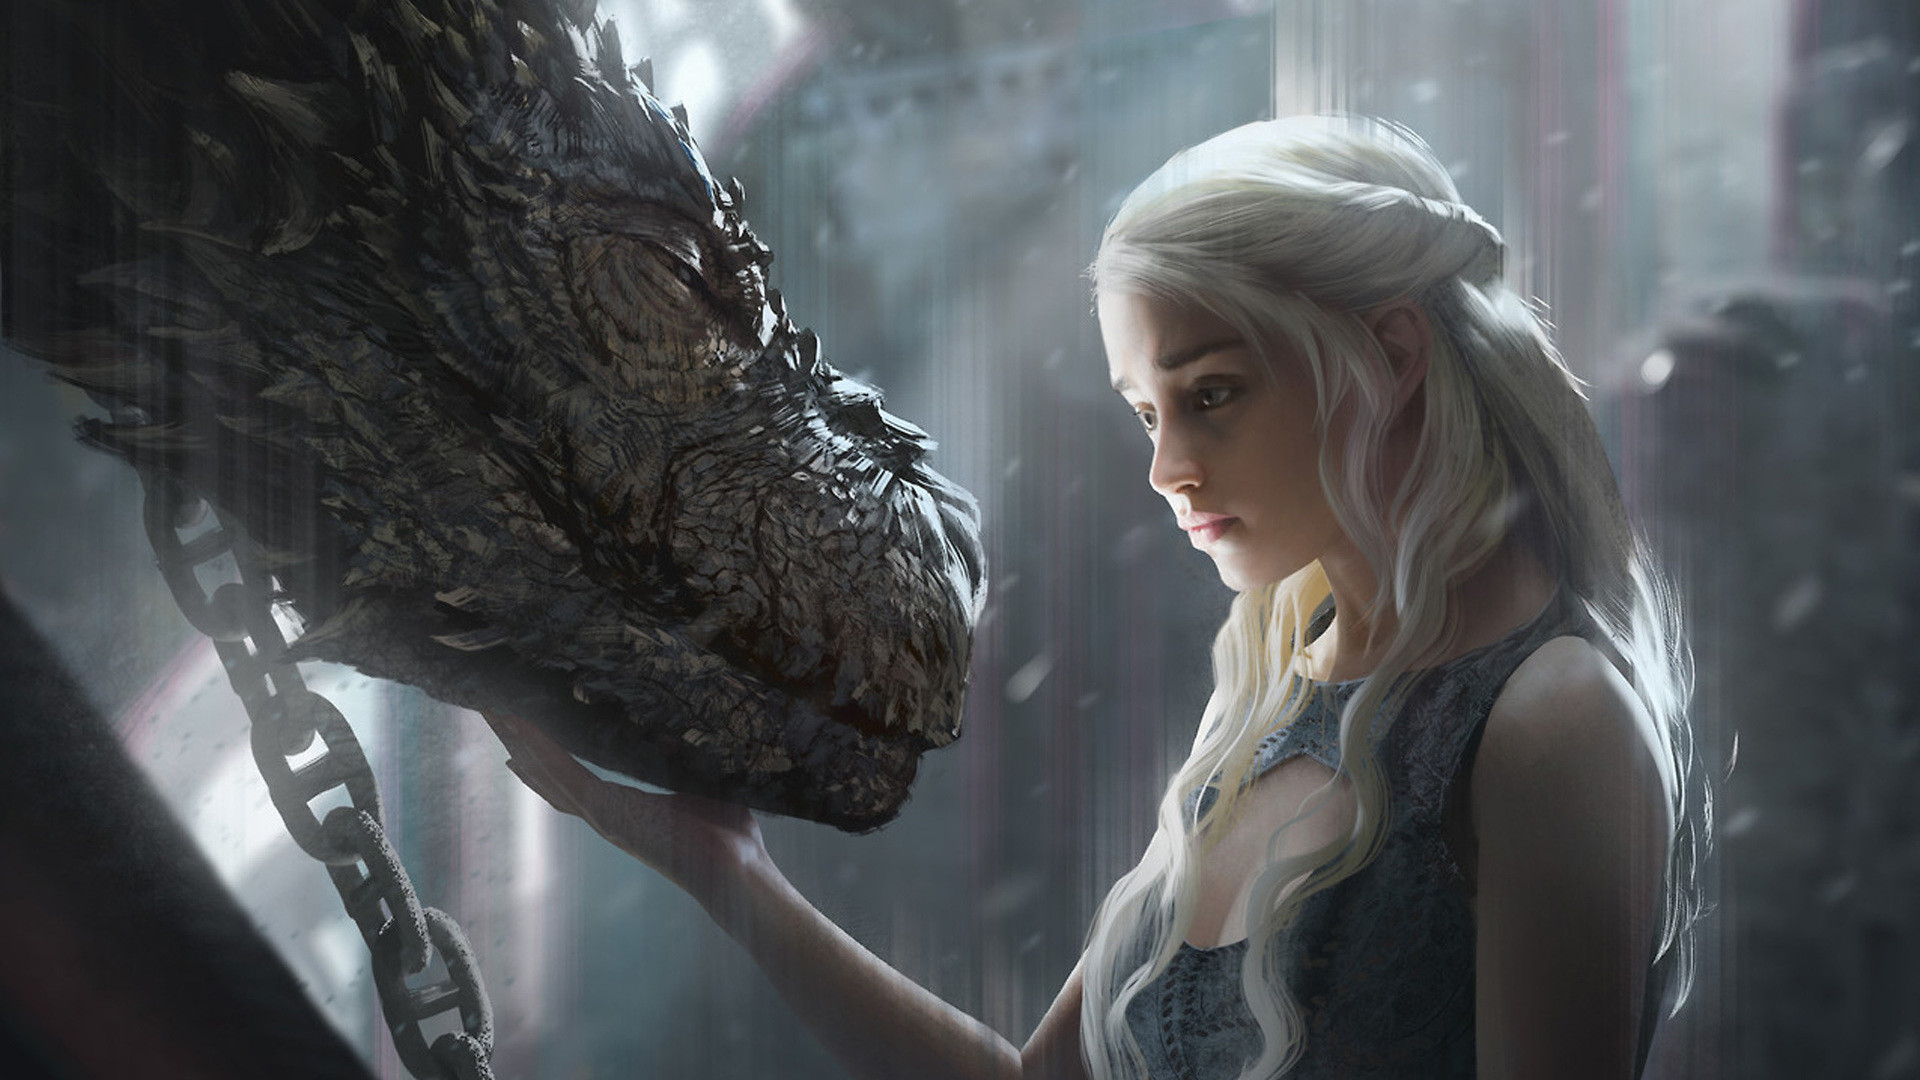 Thrones Wallpapers  Full HD wallpaper search